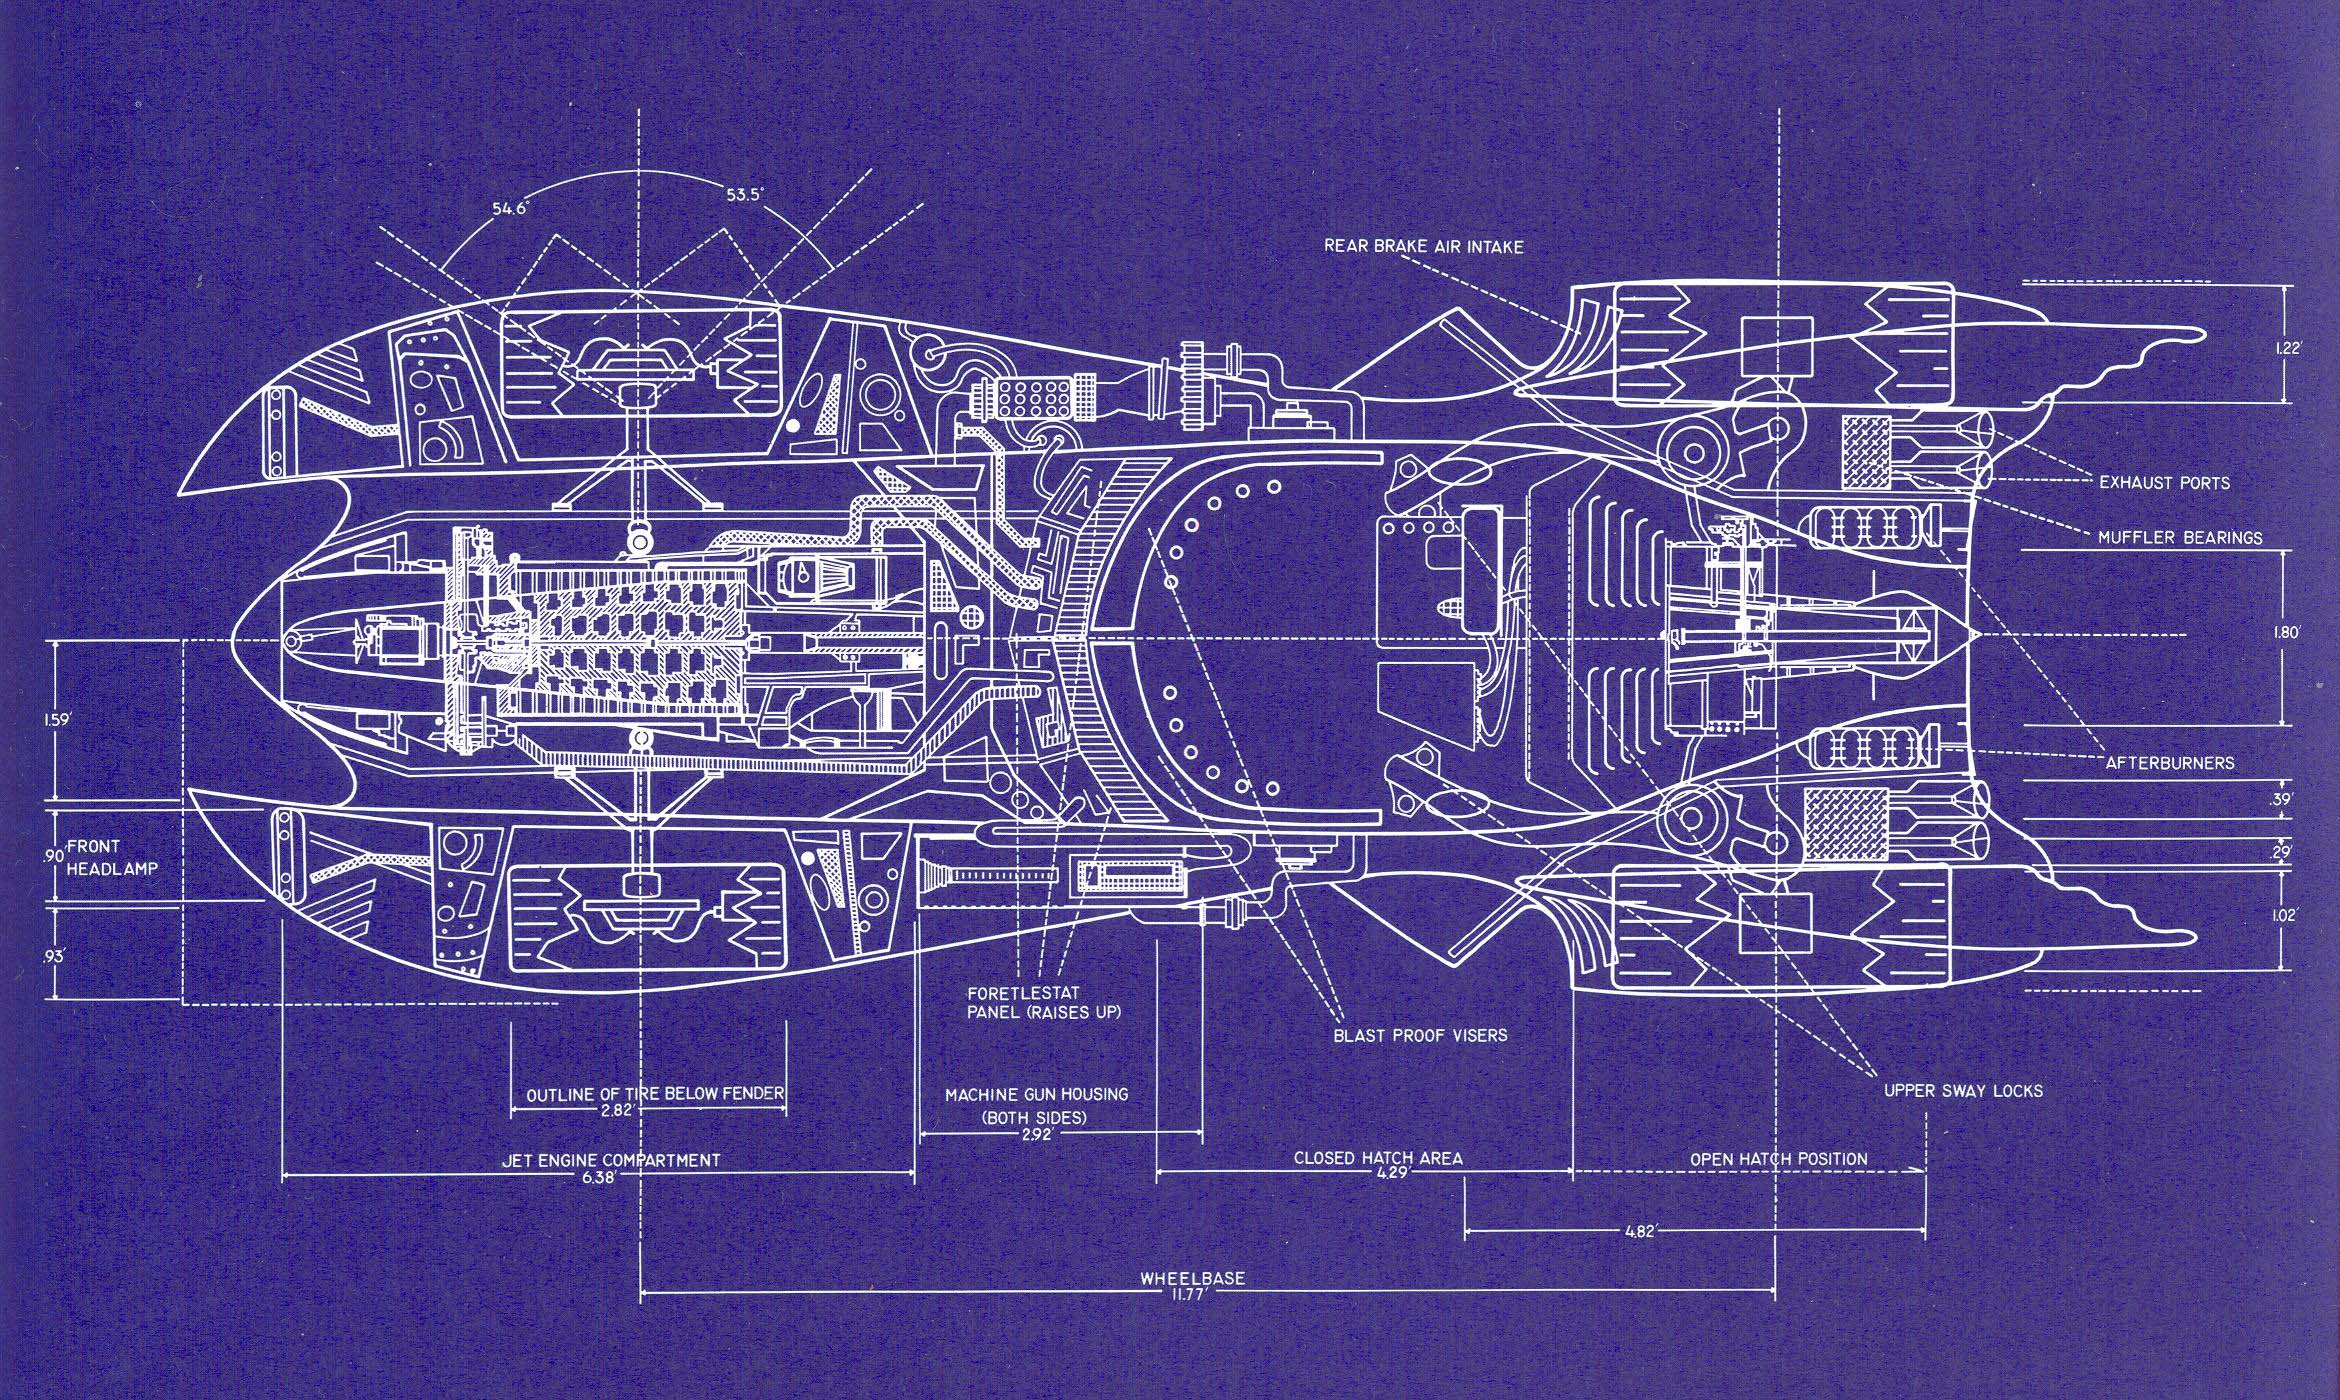 batmobile1989 blueprint 1989 batmobile social media